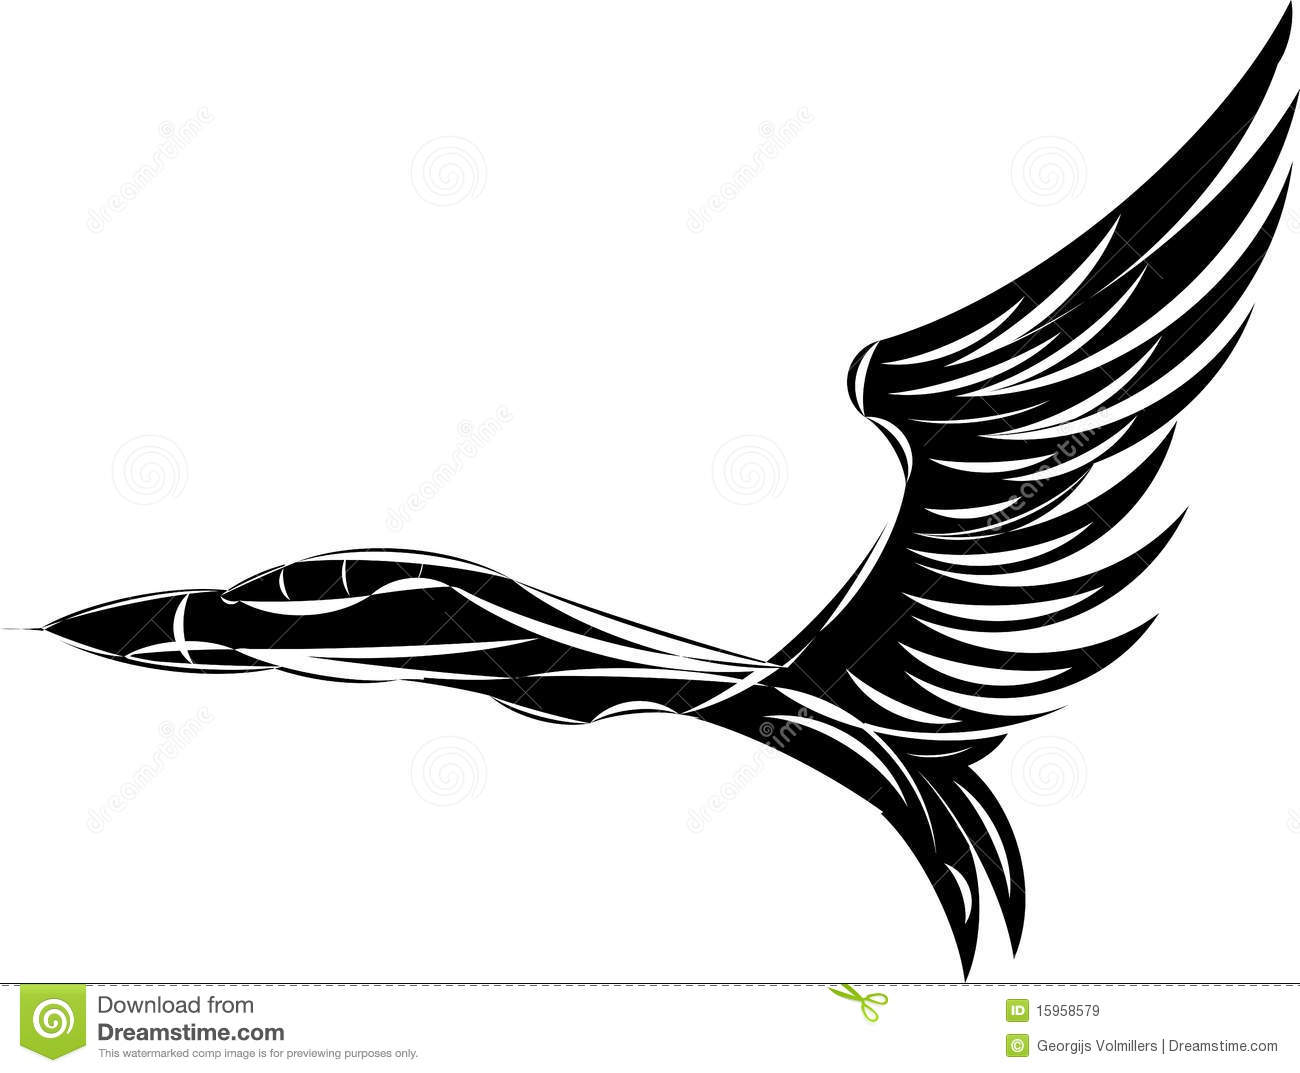 Royalty Free Stock Images Vector Sketch Jet Fighter Eagle Wings Image15958579 furthermore Stock Photo Mount Rushmore Image9099030 as well Royalty Free Stock Image State Alabama Outline Image9116926 likewise Stock Photo Greenland Map Shadow Image4288190 as well Royalty Free Stock Photo Ghana Outline Map Image4379085. on map of usa with states only